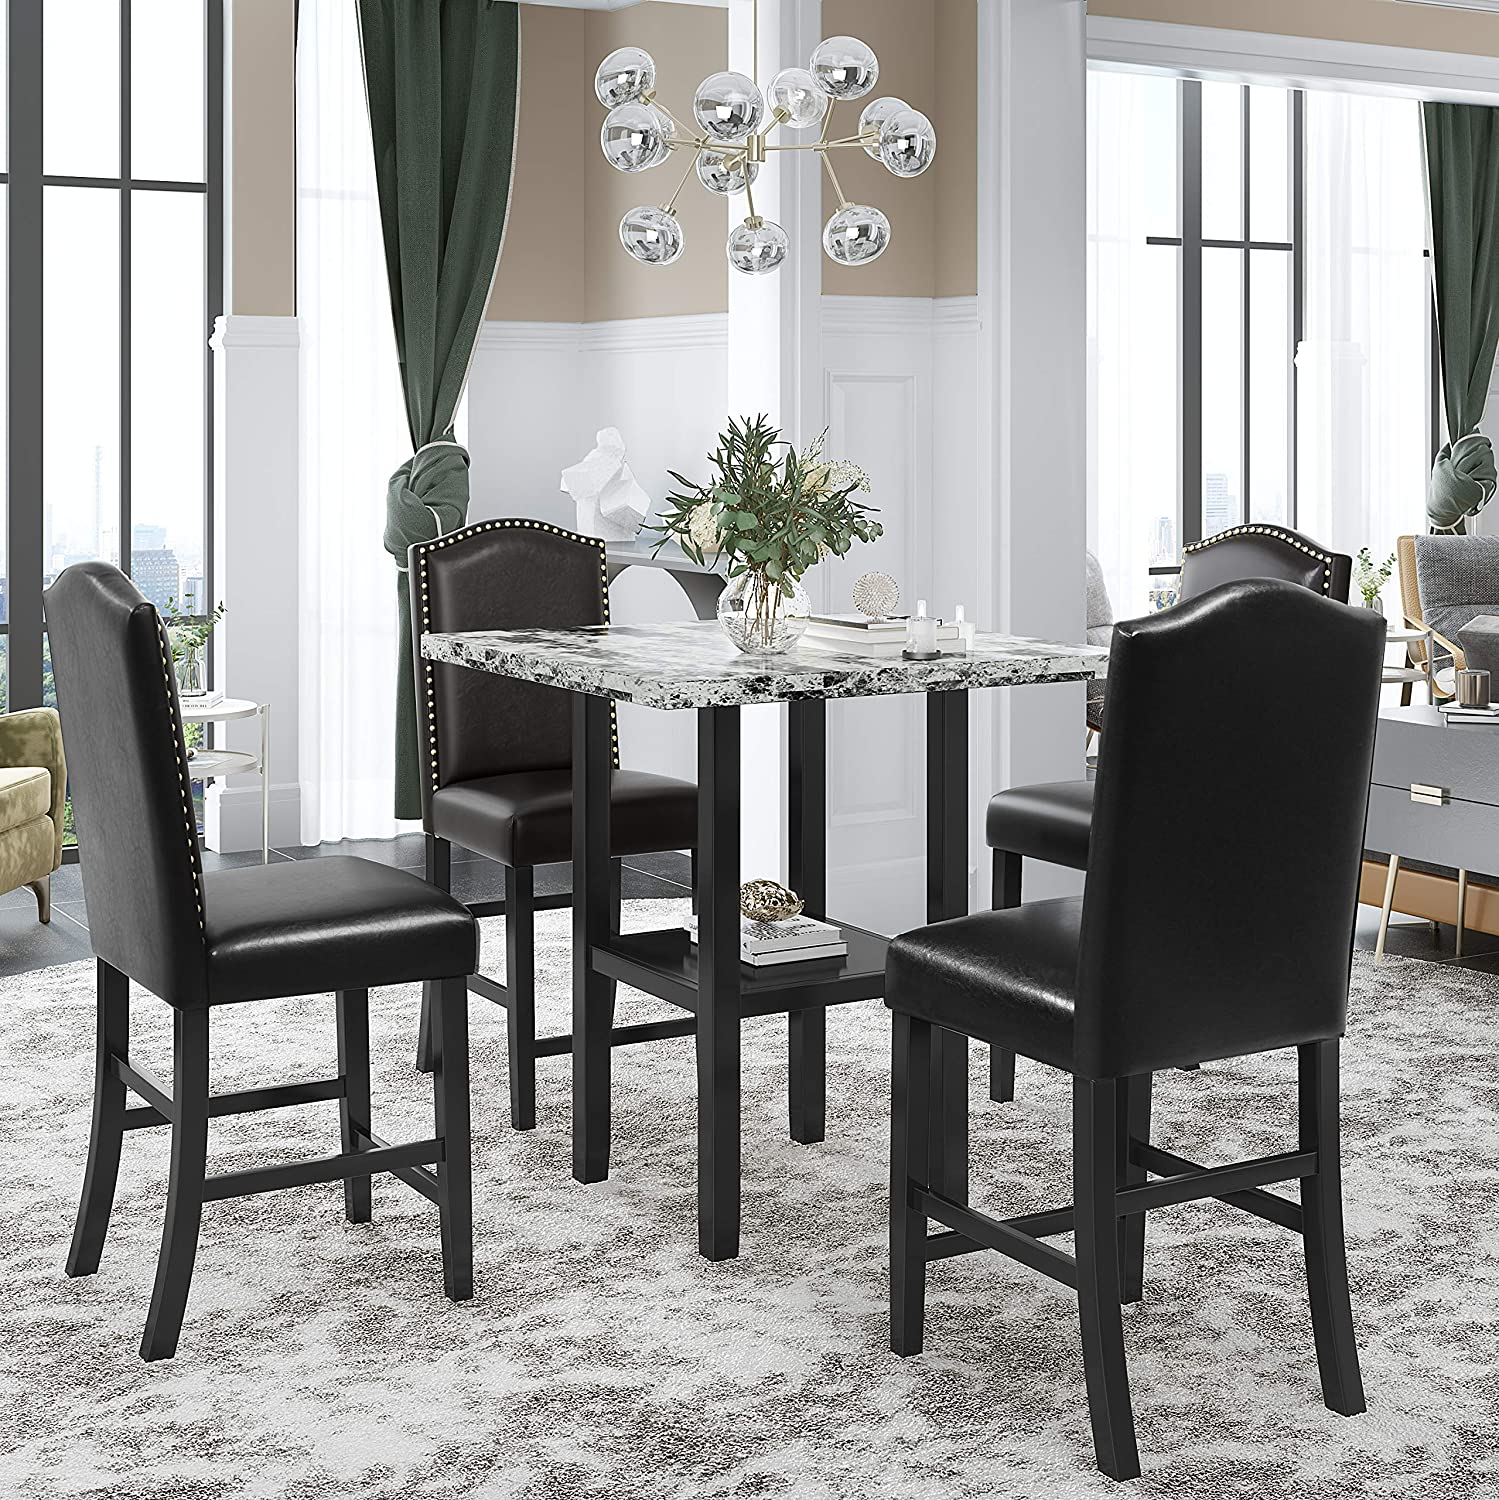 Harper Bright Designs 5 Piece Dining Table Set With Faux Marble Veneer Tabletop Bottom Shelf 4 Upholstered Chairs For Kitchen Dining Room Furniture Set Black Chair Gray Table Table Chair